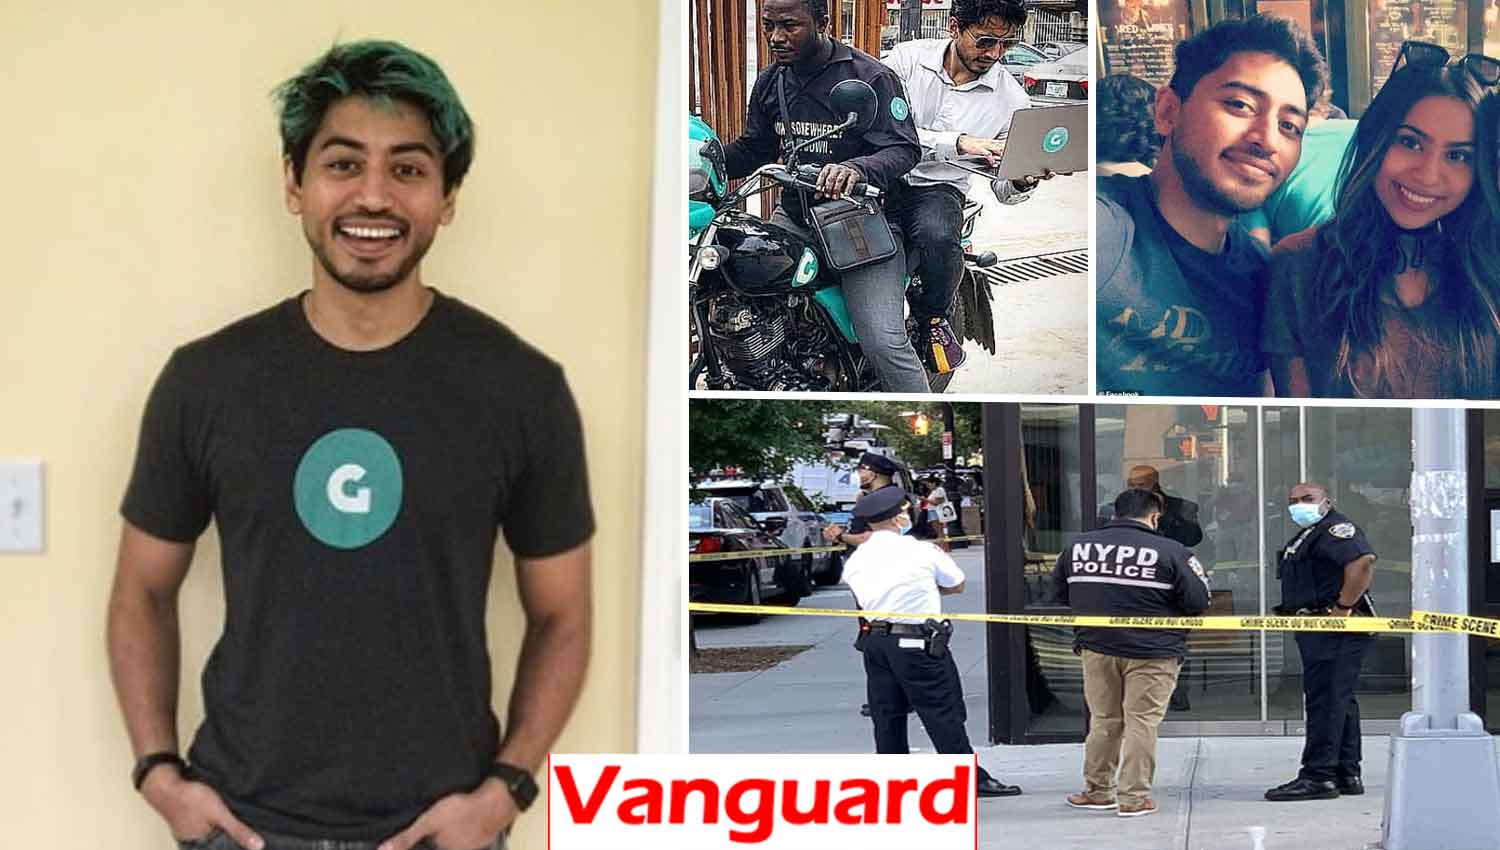 Tech CEO Fahim Saleh found dismembered in NY apartment